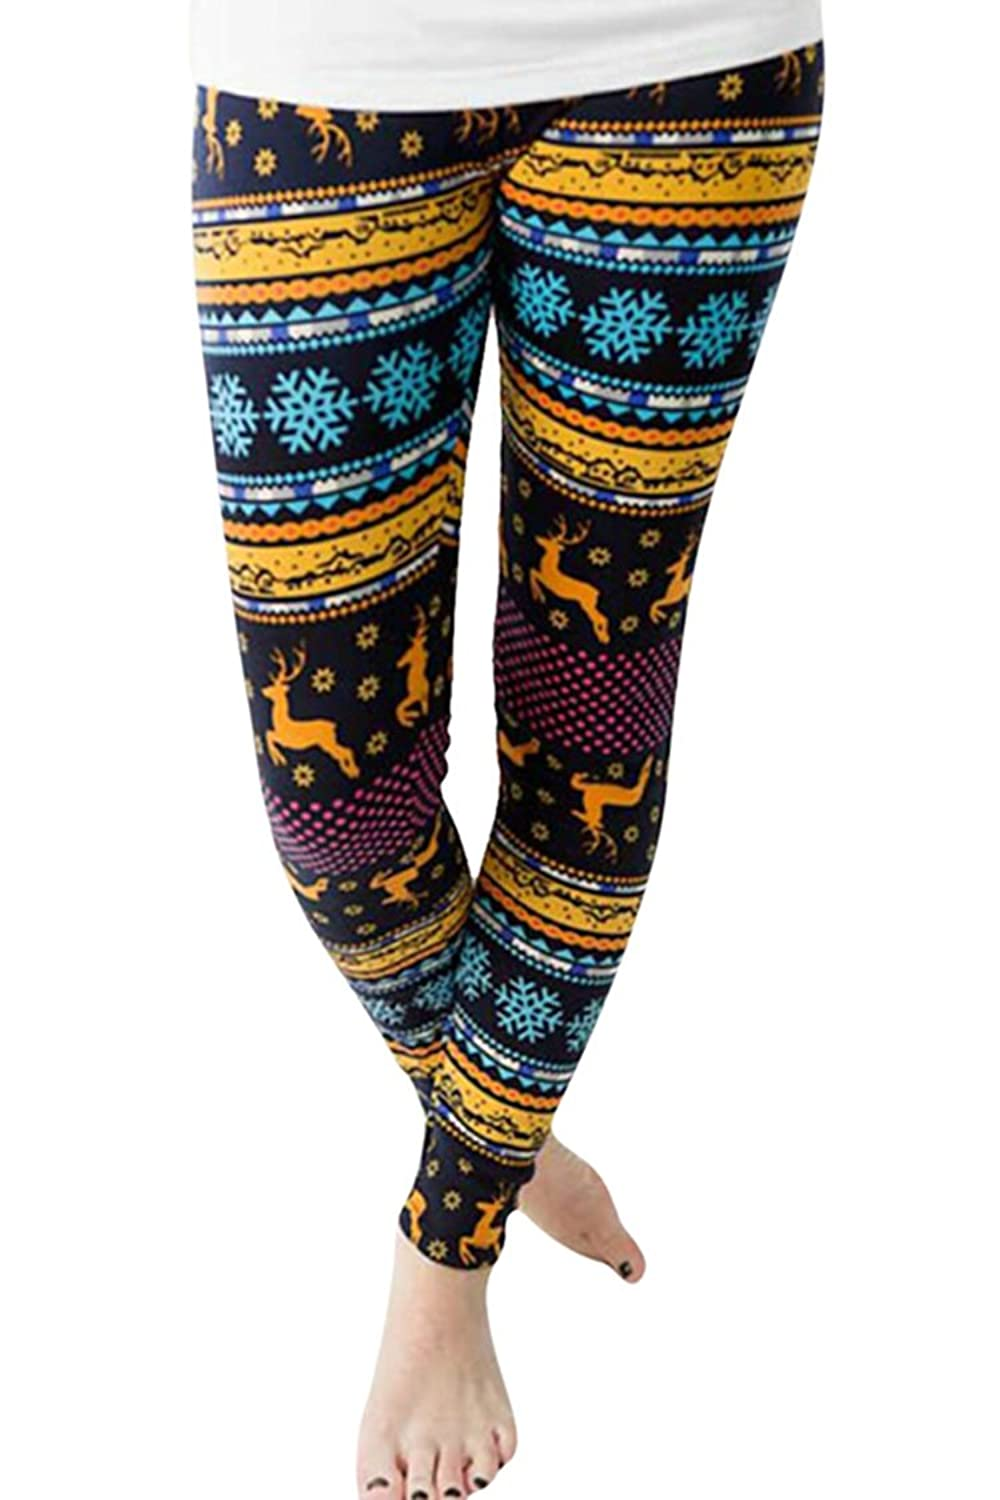 LOV ANNY Women's Stretchy Yoga Leggings Christmas Costume Printed Workout Tights